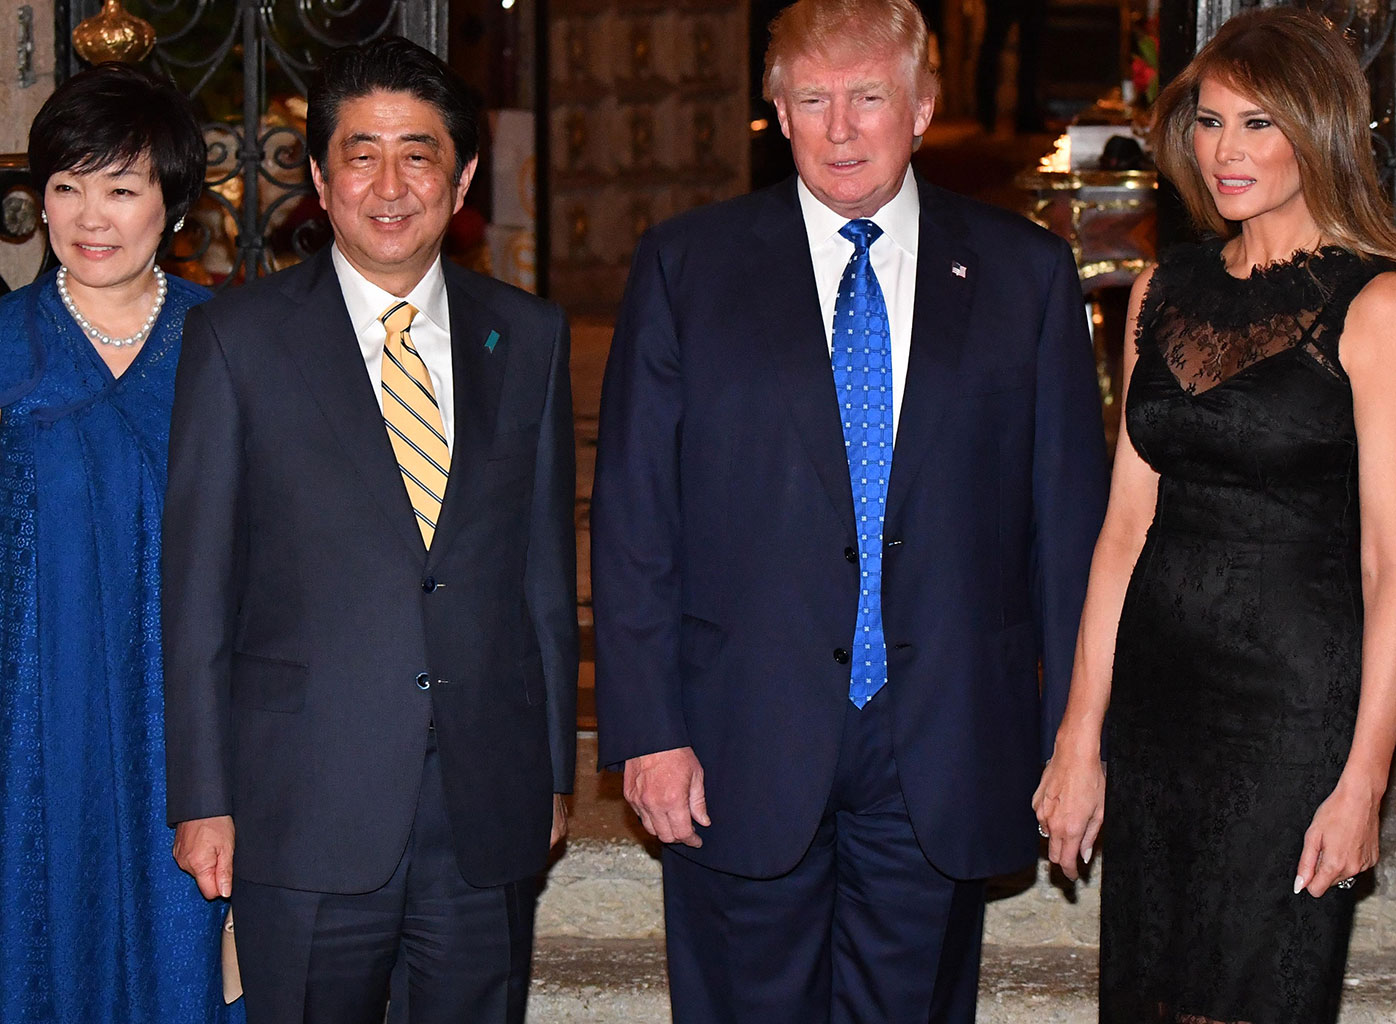 Trump falsely claims Japanese first lady doesn't speak English